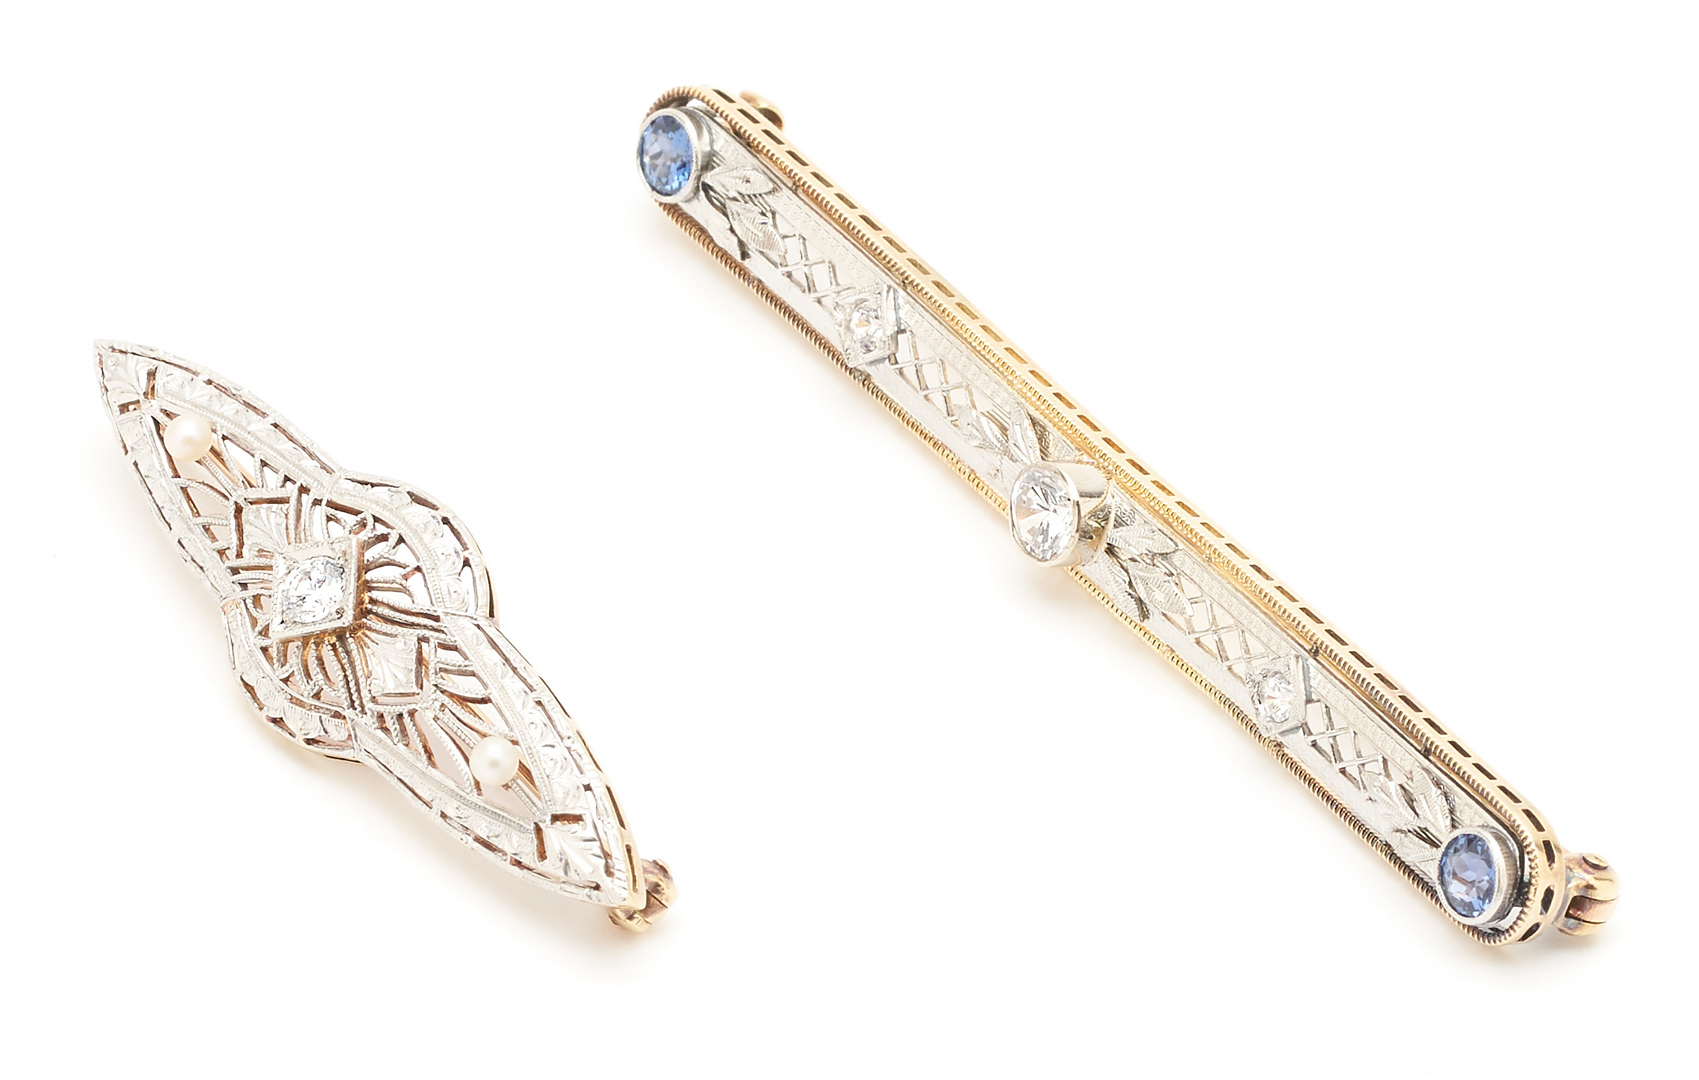 Lot 1207: 2 Ladies Art Deco Style Brooches